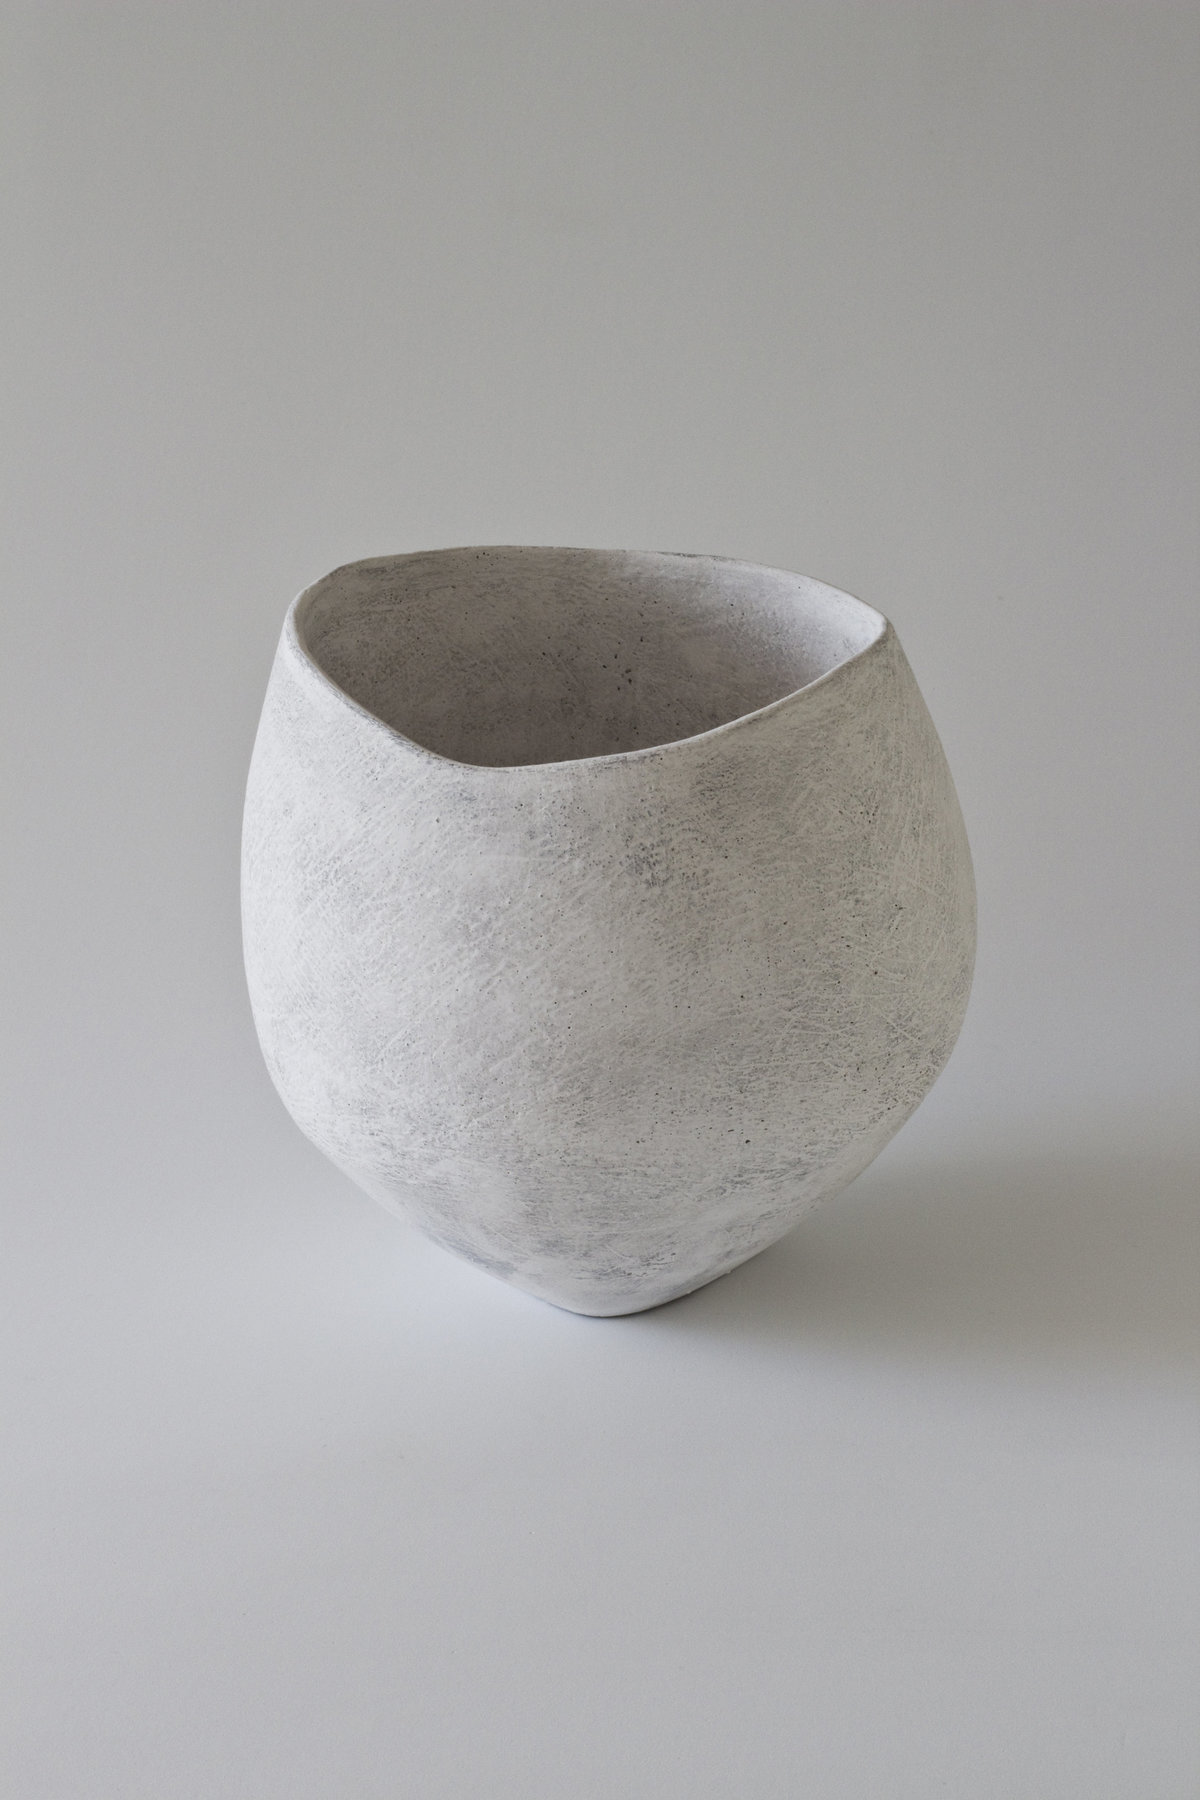 Yasha-Butler-Ceramic-Sculpture-Bowl-White-Lithic_2-3500px